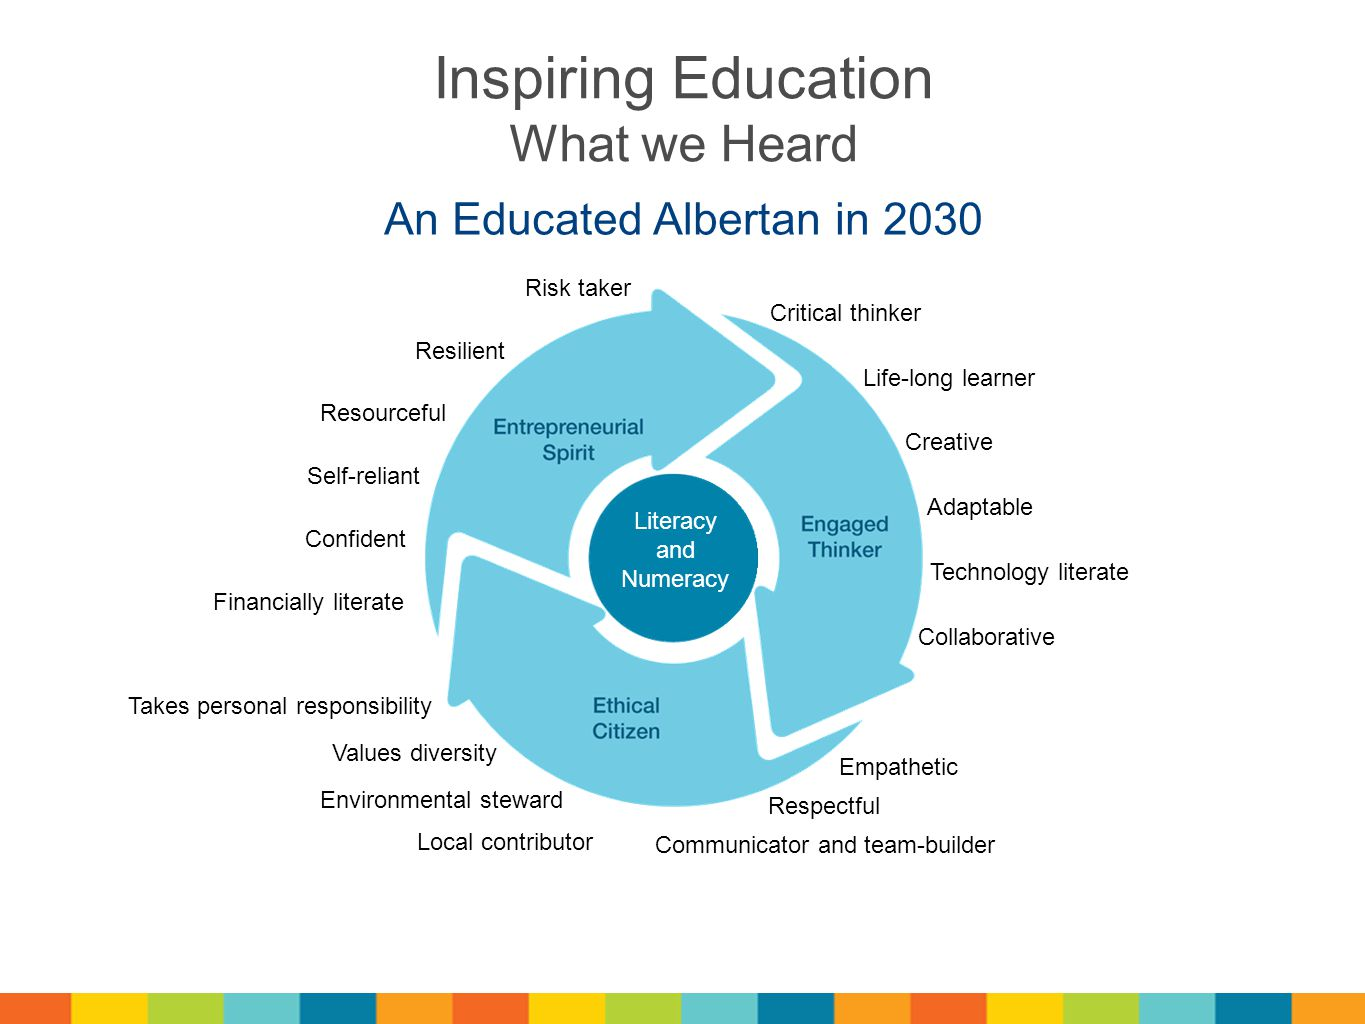 An Educated Albertan in 2030 Literacy and Numeracy Critical thinker Life-long learner Creative Adaptable Technology literate Collaborative Empathetic Respectful Communicator and team-builder Environmental steward Values diversity Takes personal responsibility Financially literate Confident Self-reliant Resourceful Resilient Risk taker Inspiring Education What we Heard Local contributor